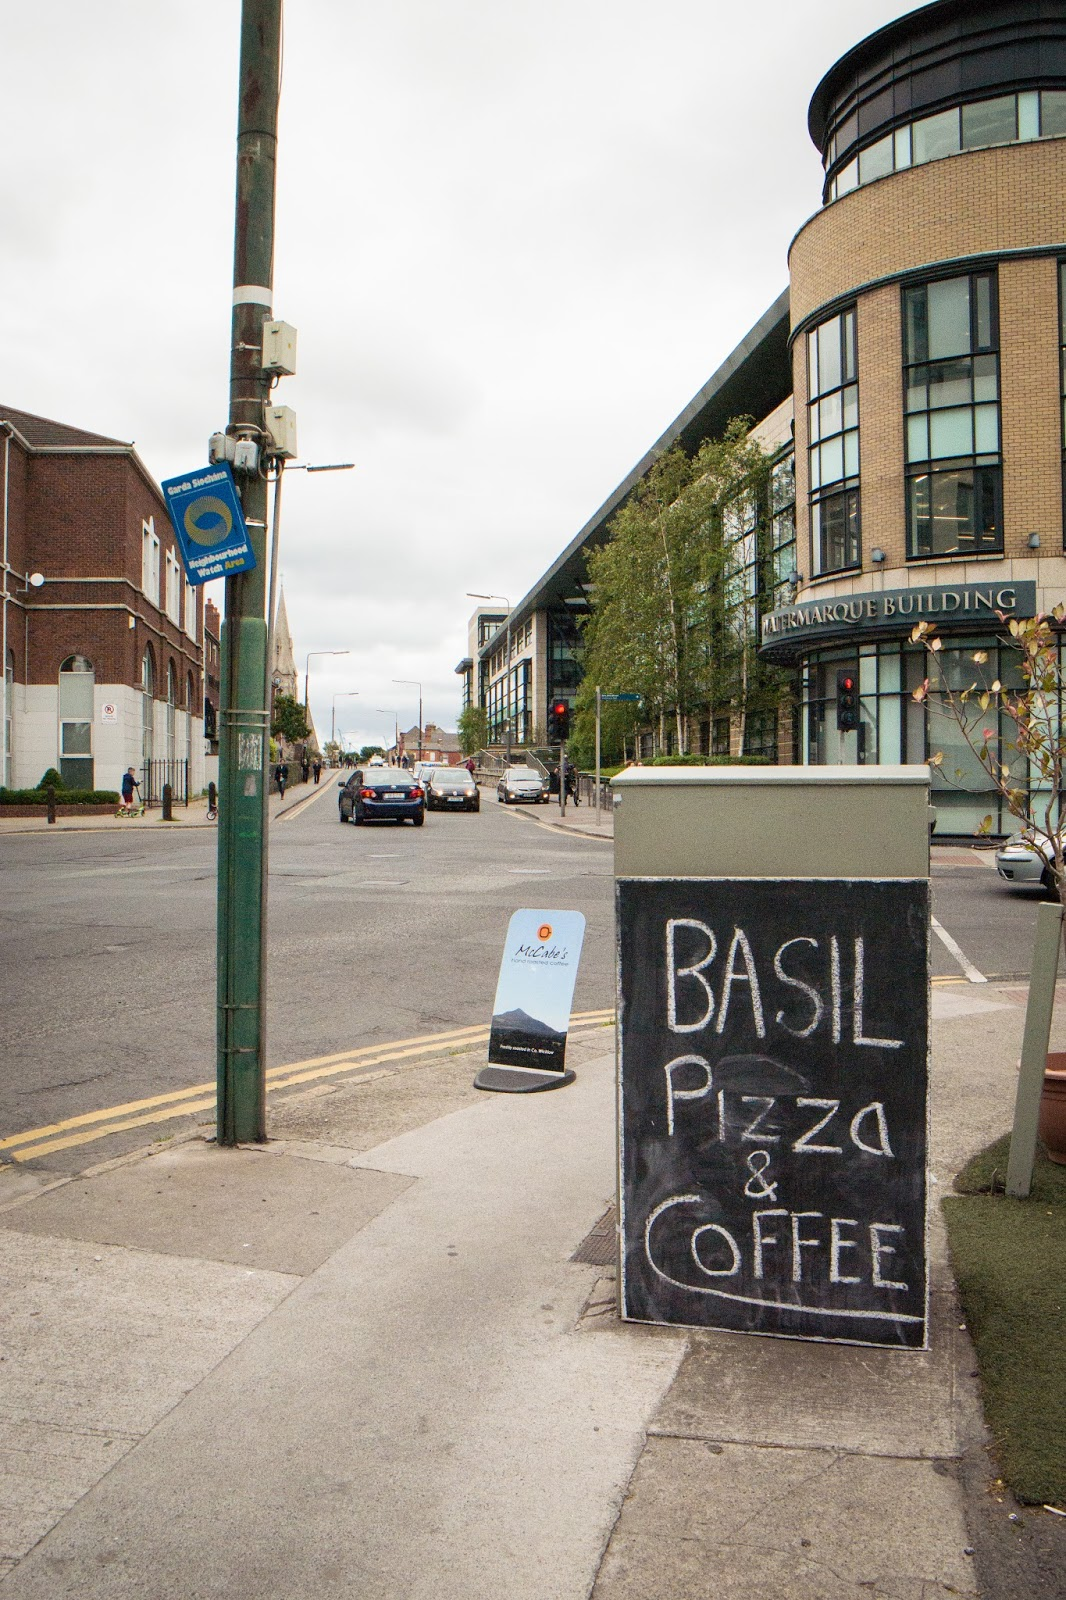 Basil Pizza Menu Dublin - best menu template design